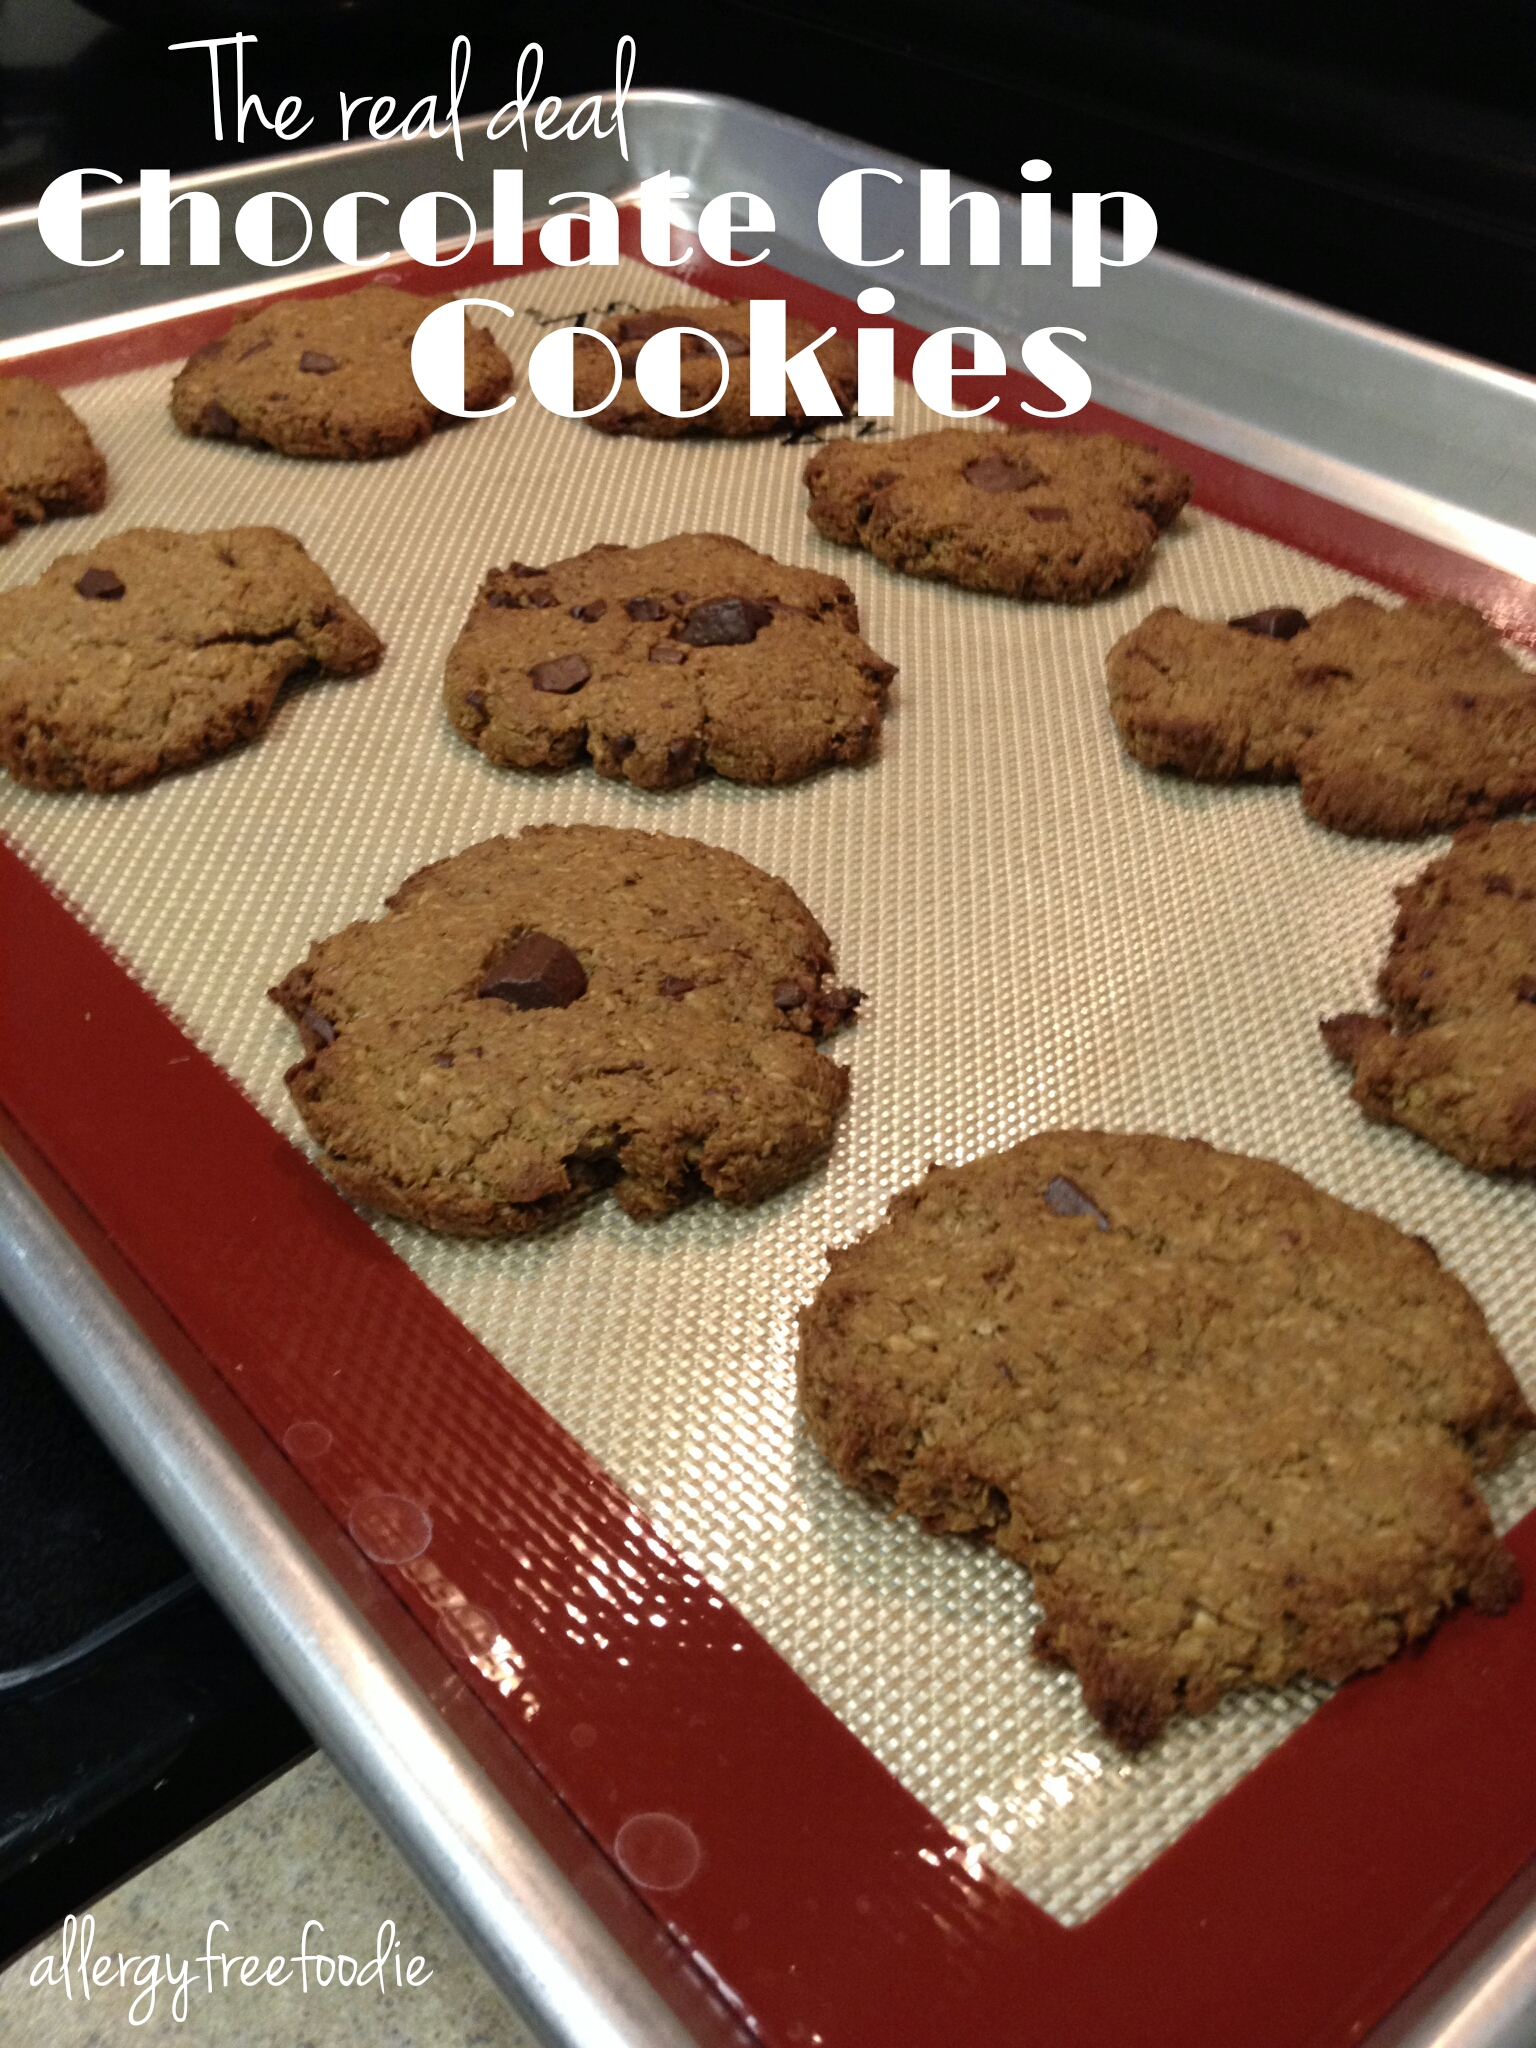 the real deal choc chip cookies- title